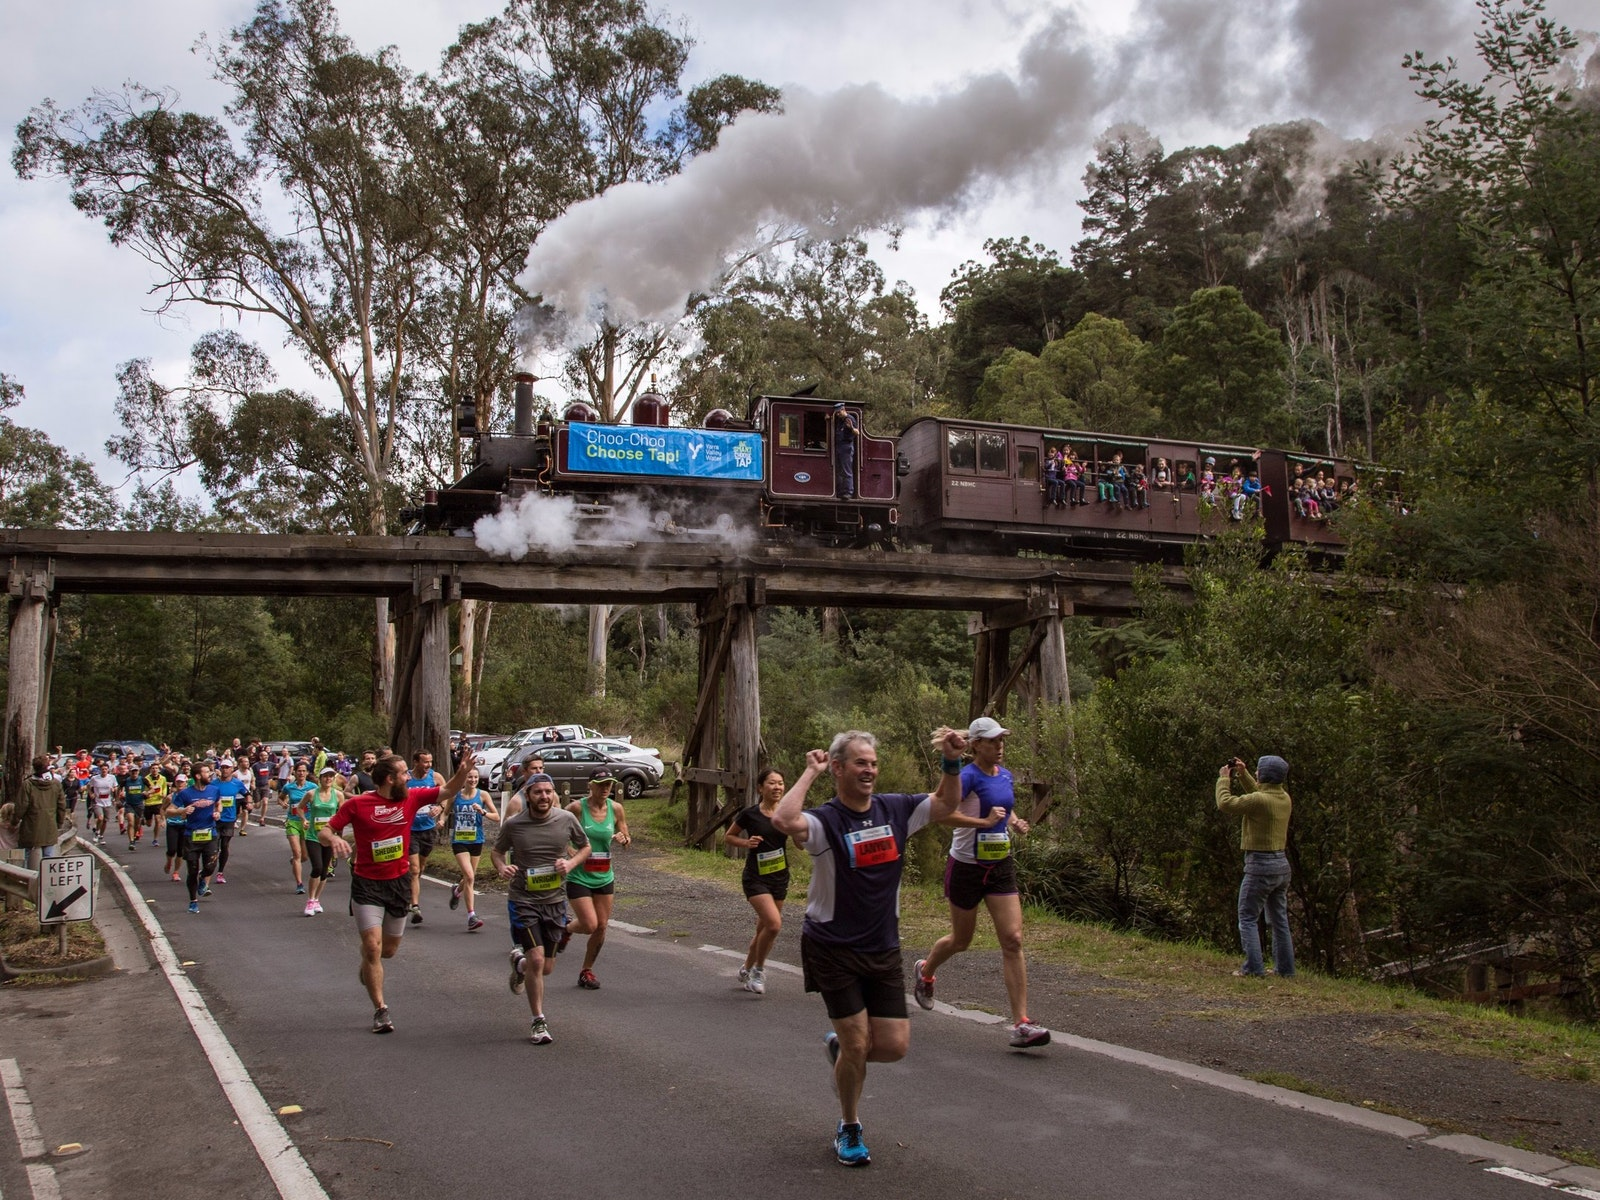 Puffing Billy great train race runners and train